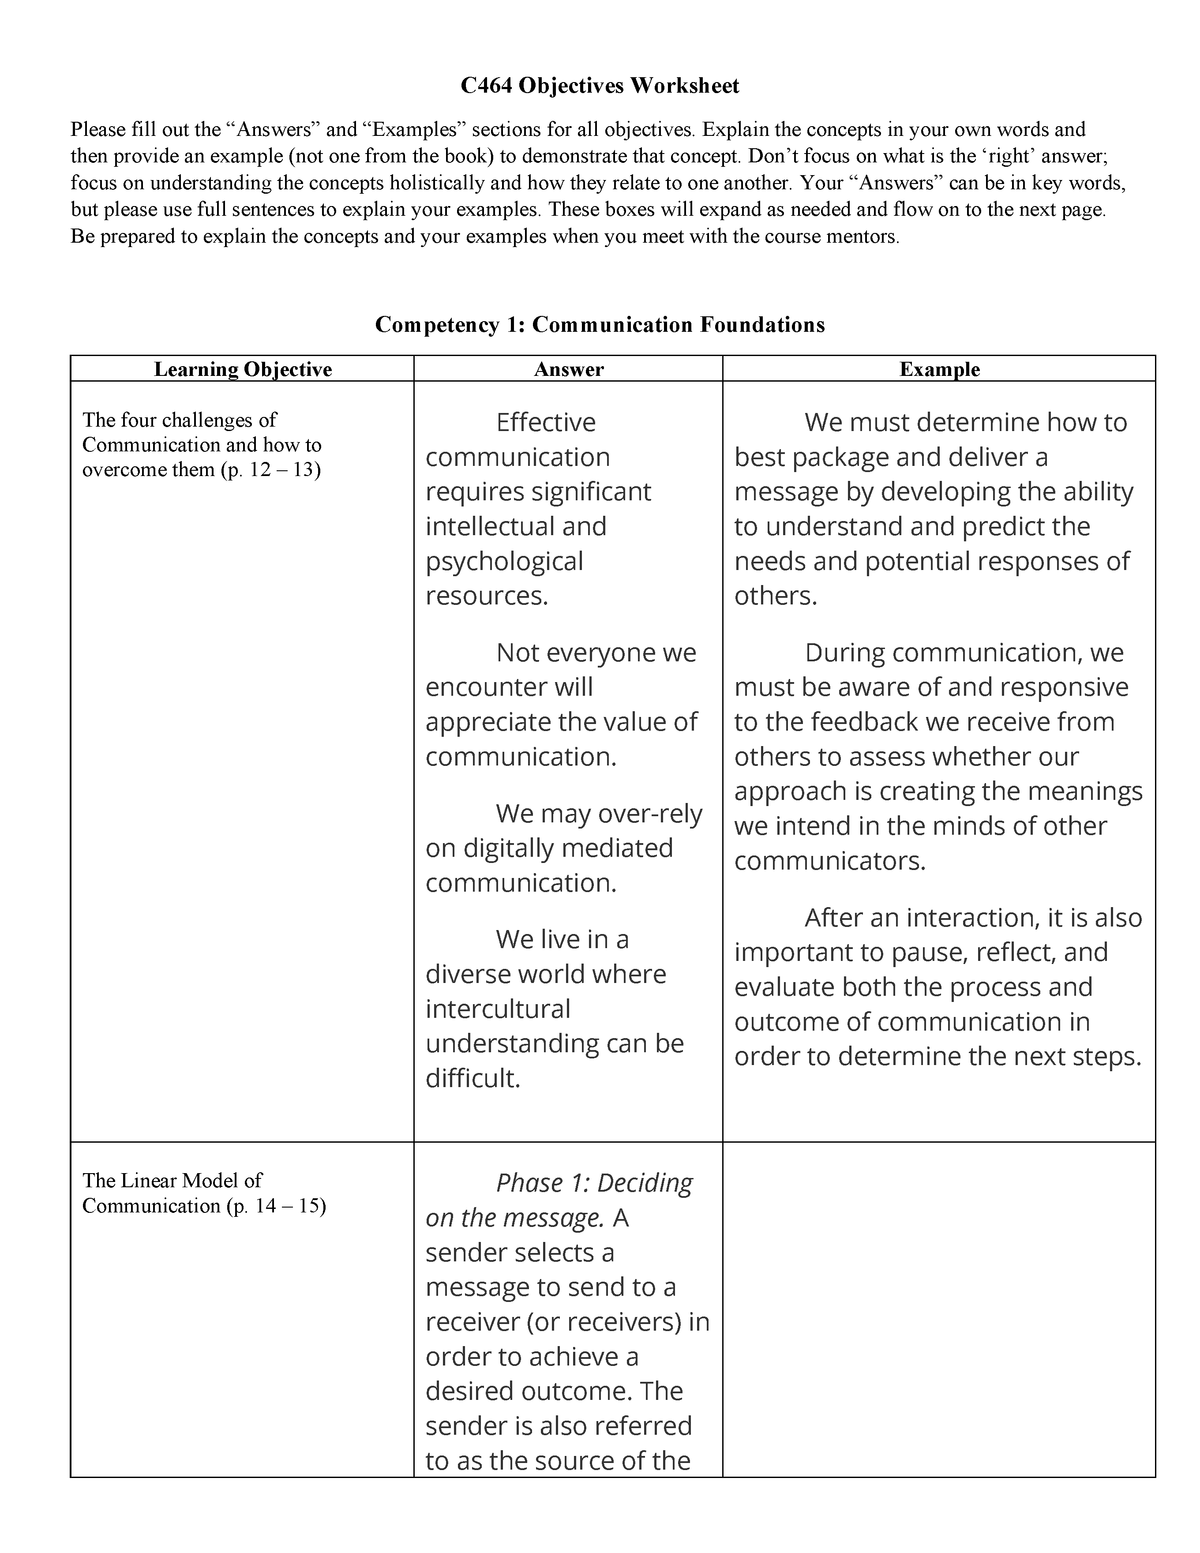 C464 Objectives Worksheet (Repaired) - C464: Introduction to